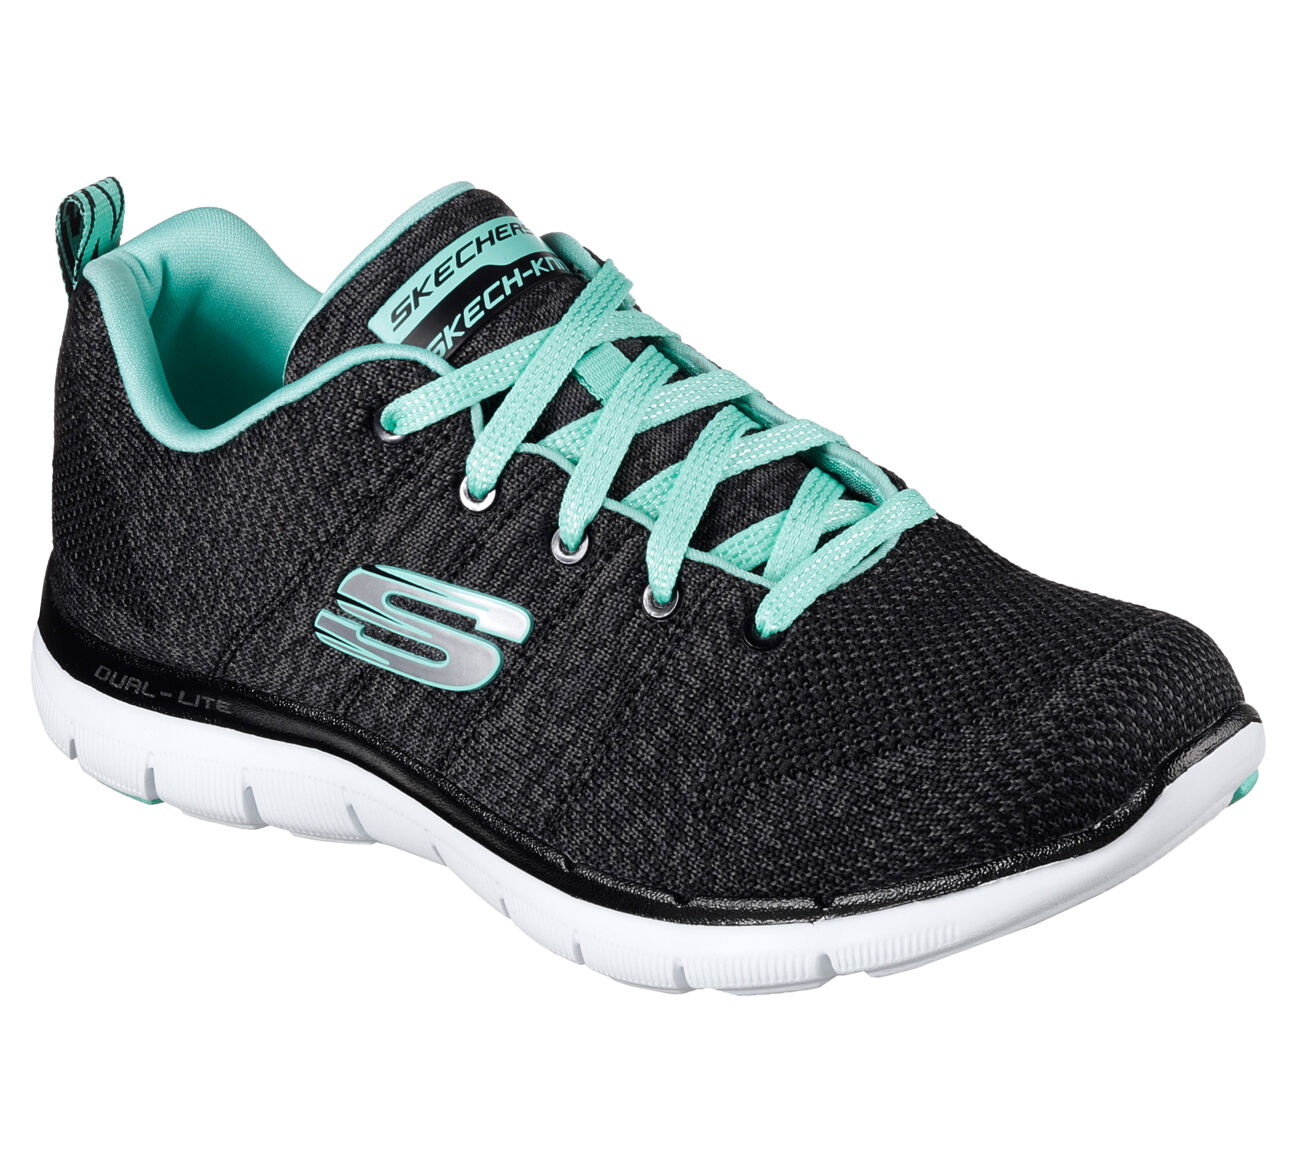 bb35b8be4a8a Details about Skechers High Energy Trainers Womens Flex Appeal 2.0 Sports  Memory Foam Shoes